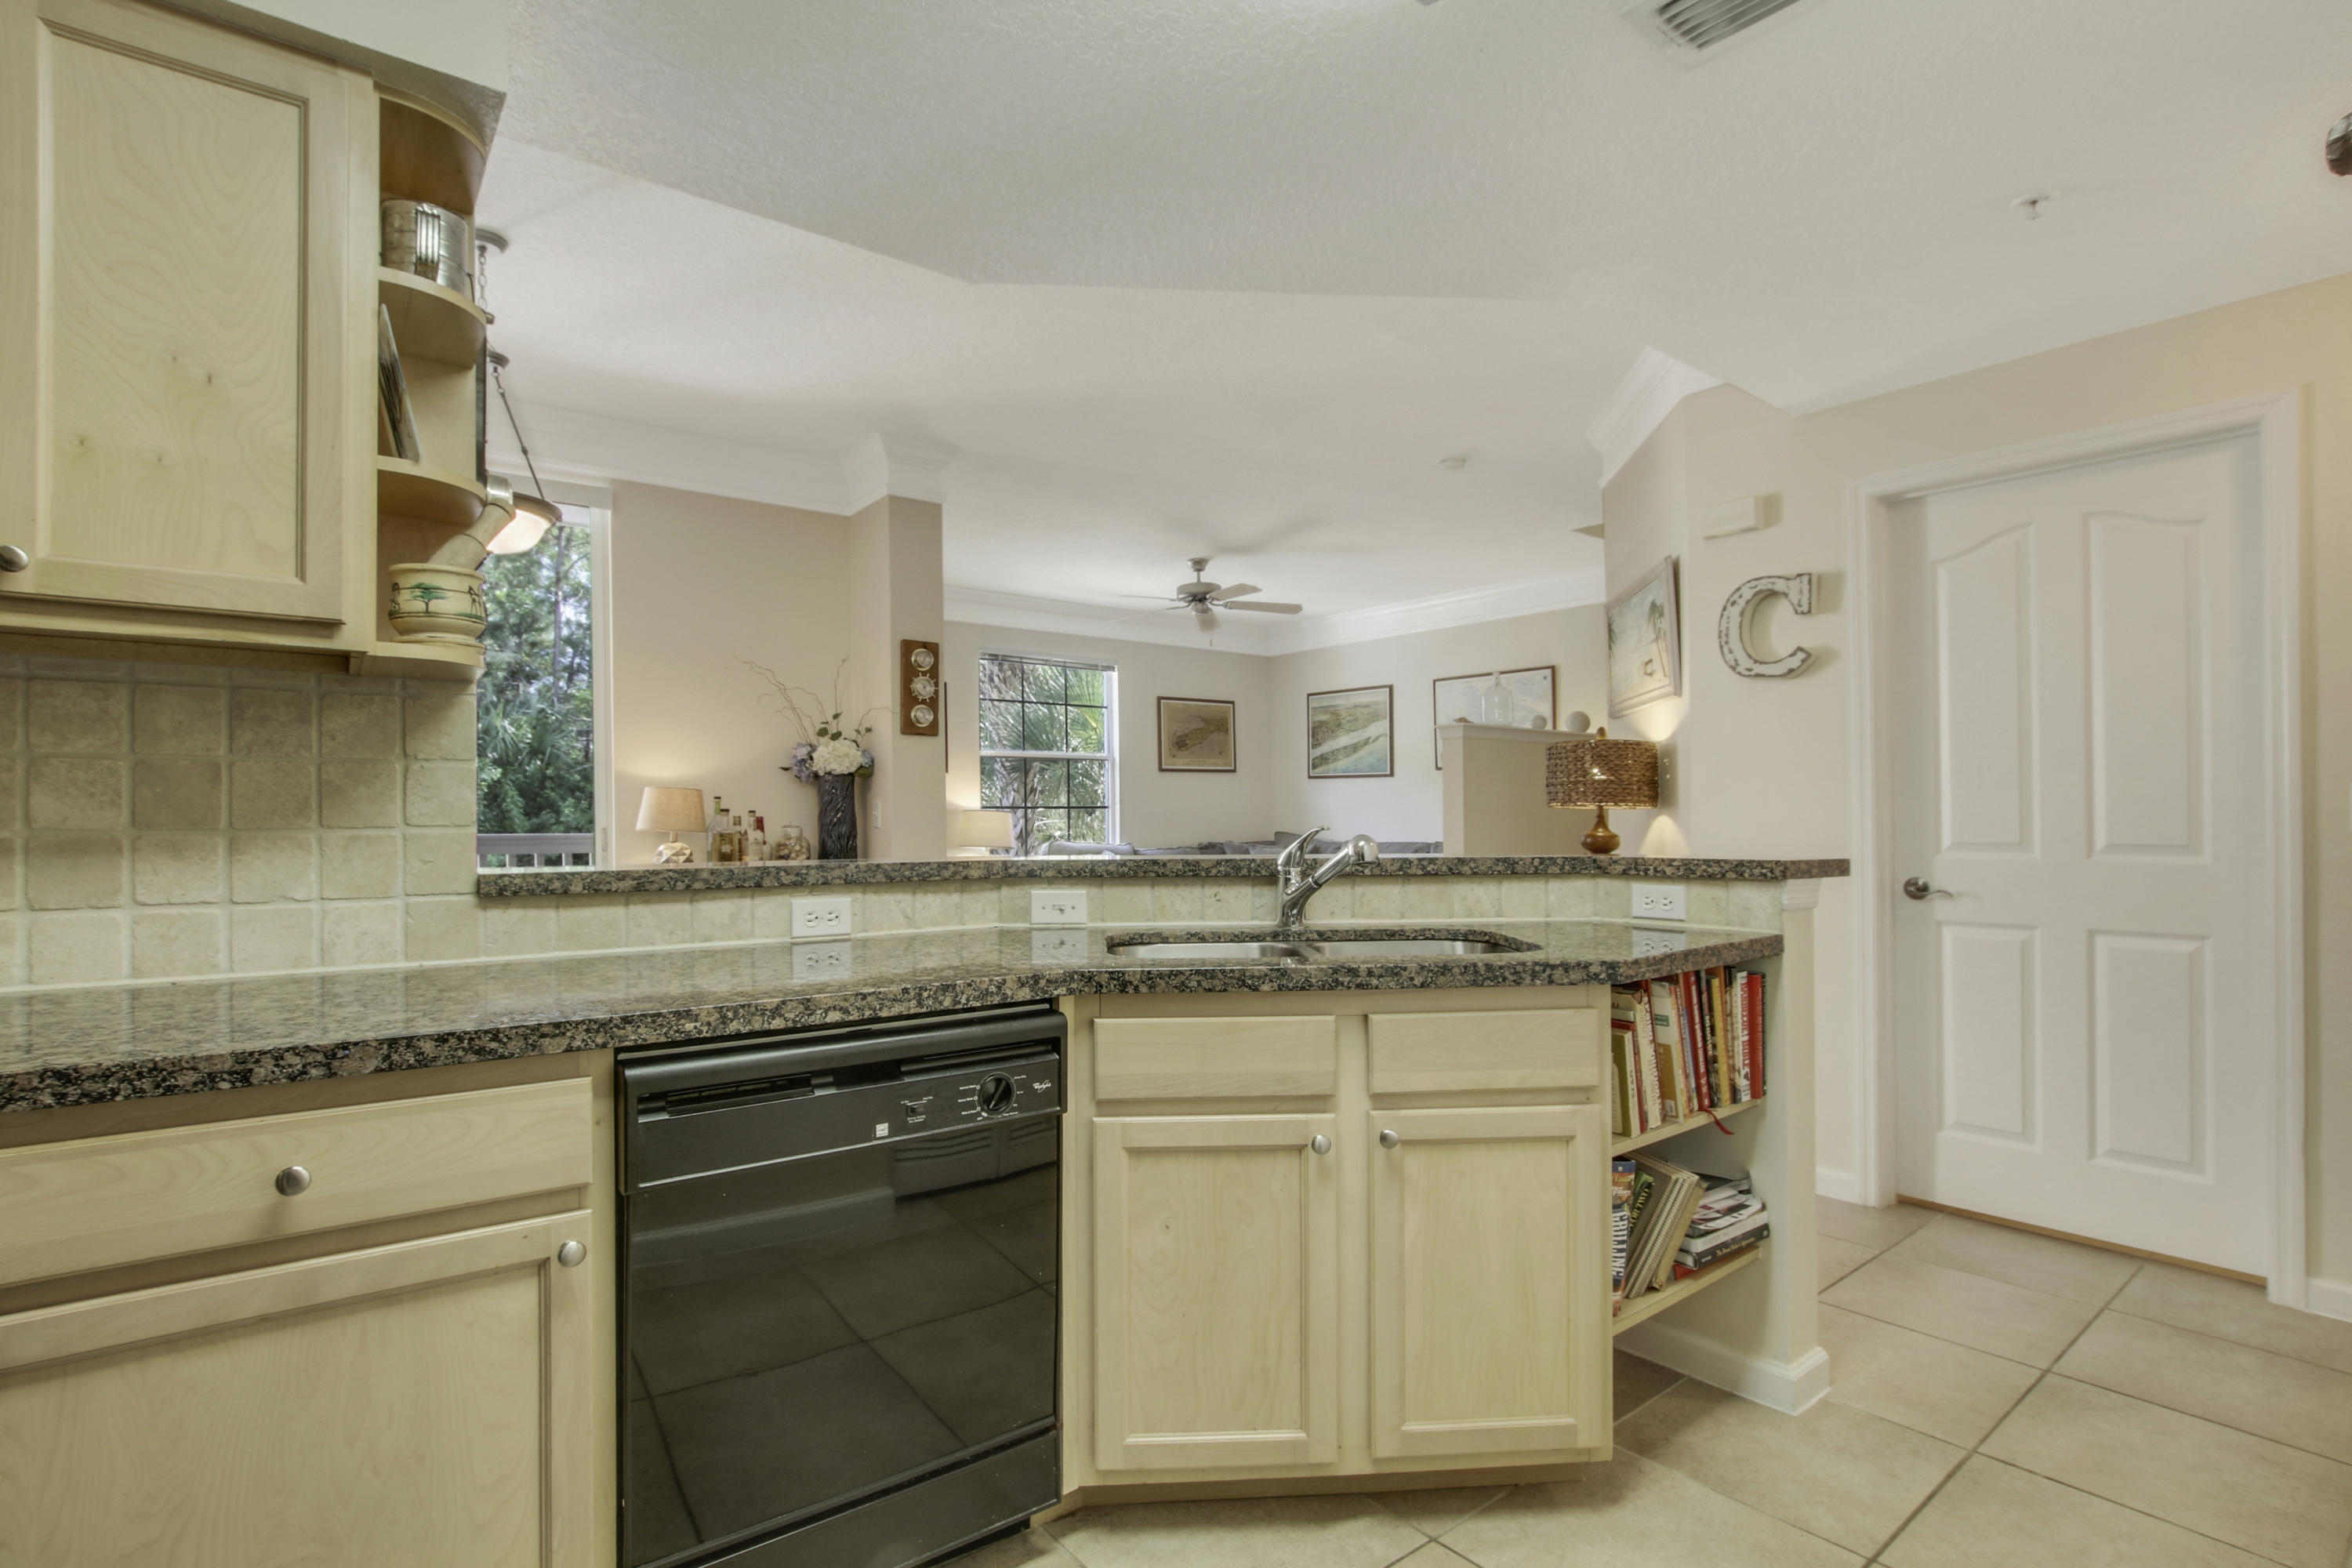 245 Murcia Drive 204  - Abacoa Homes - photo 7